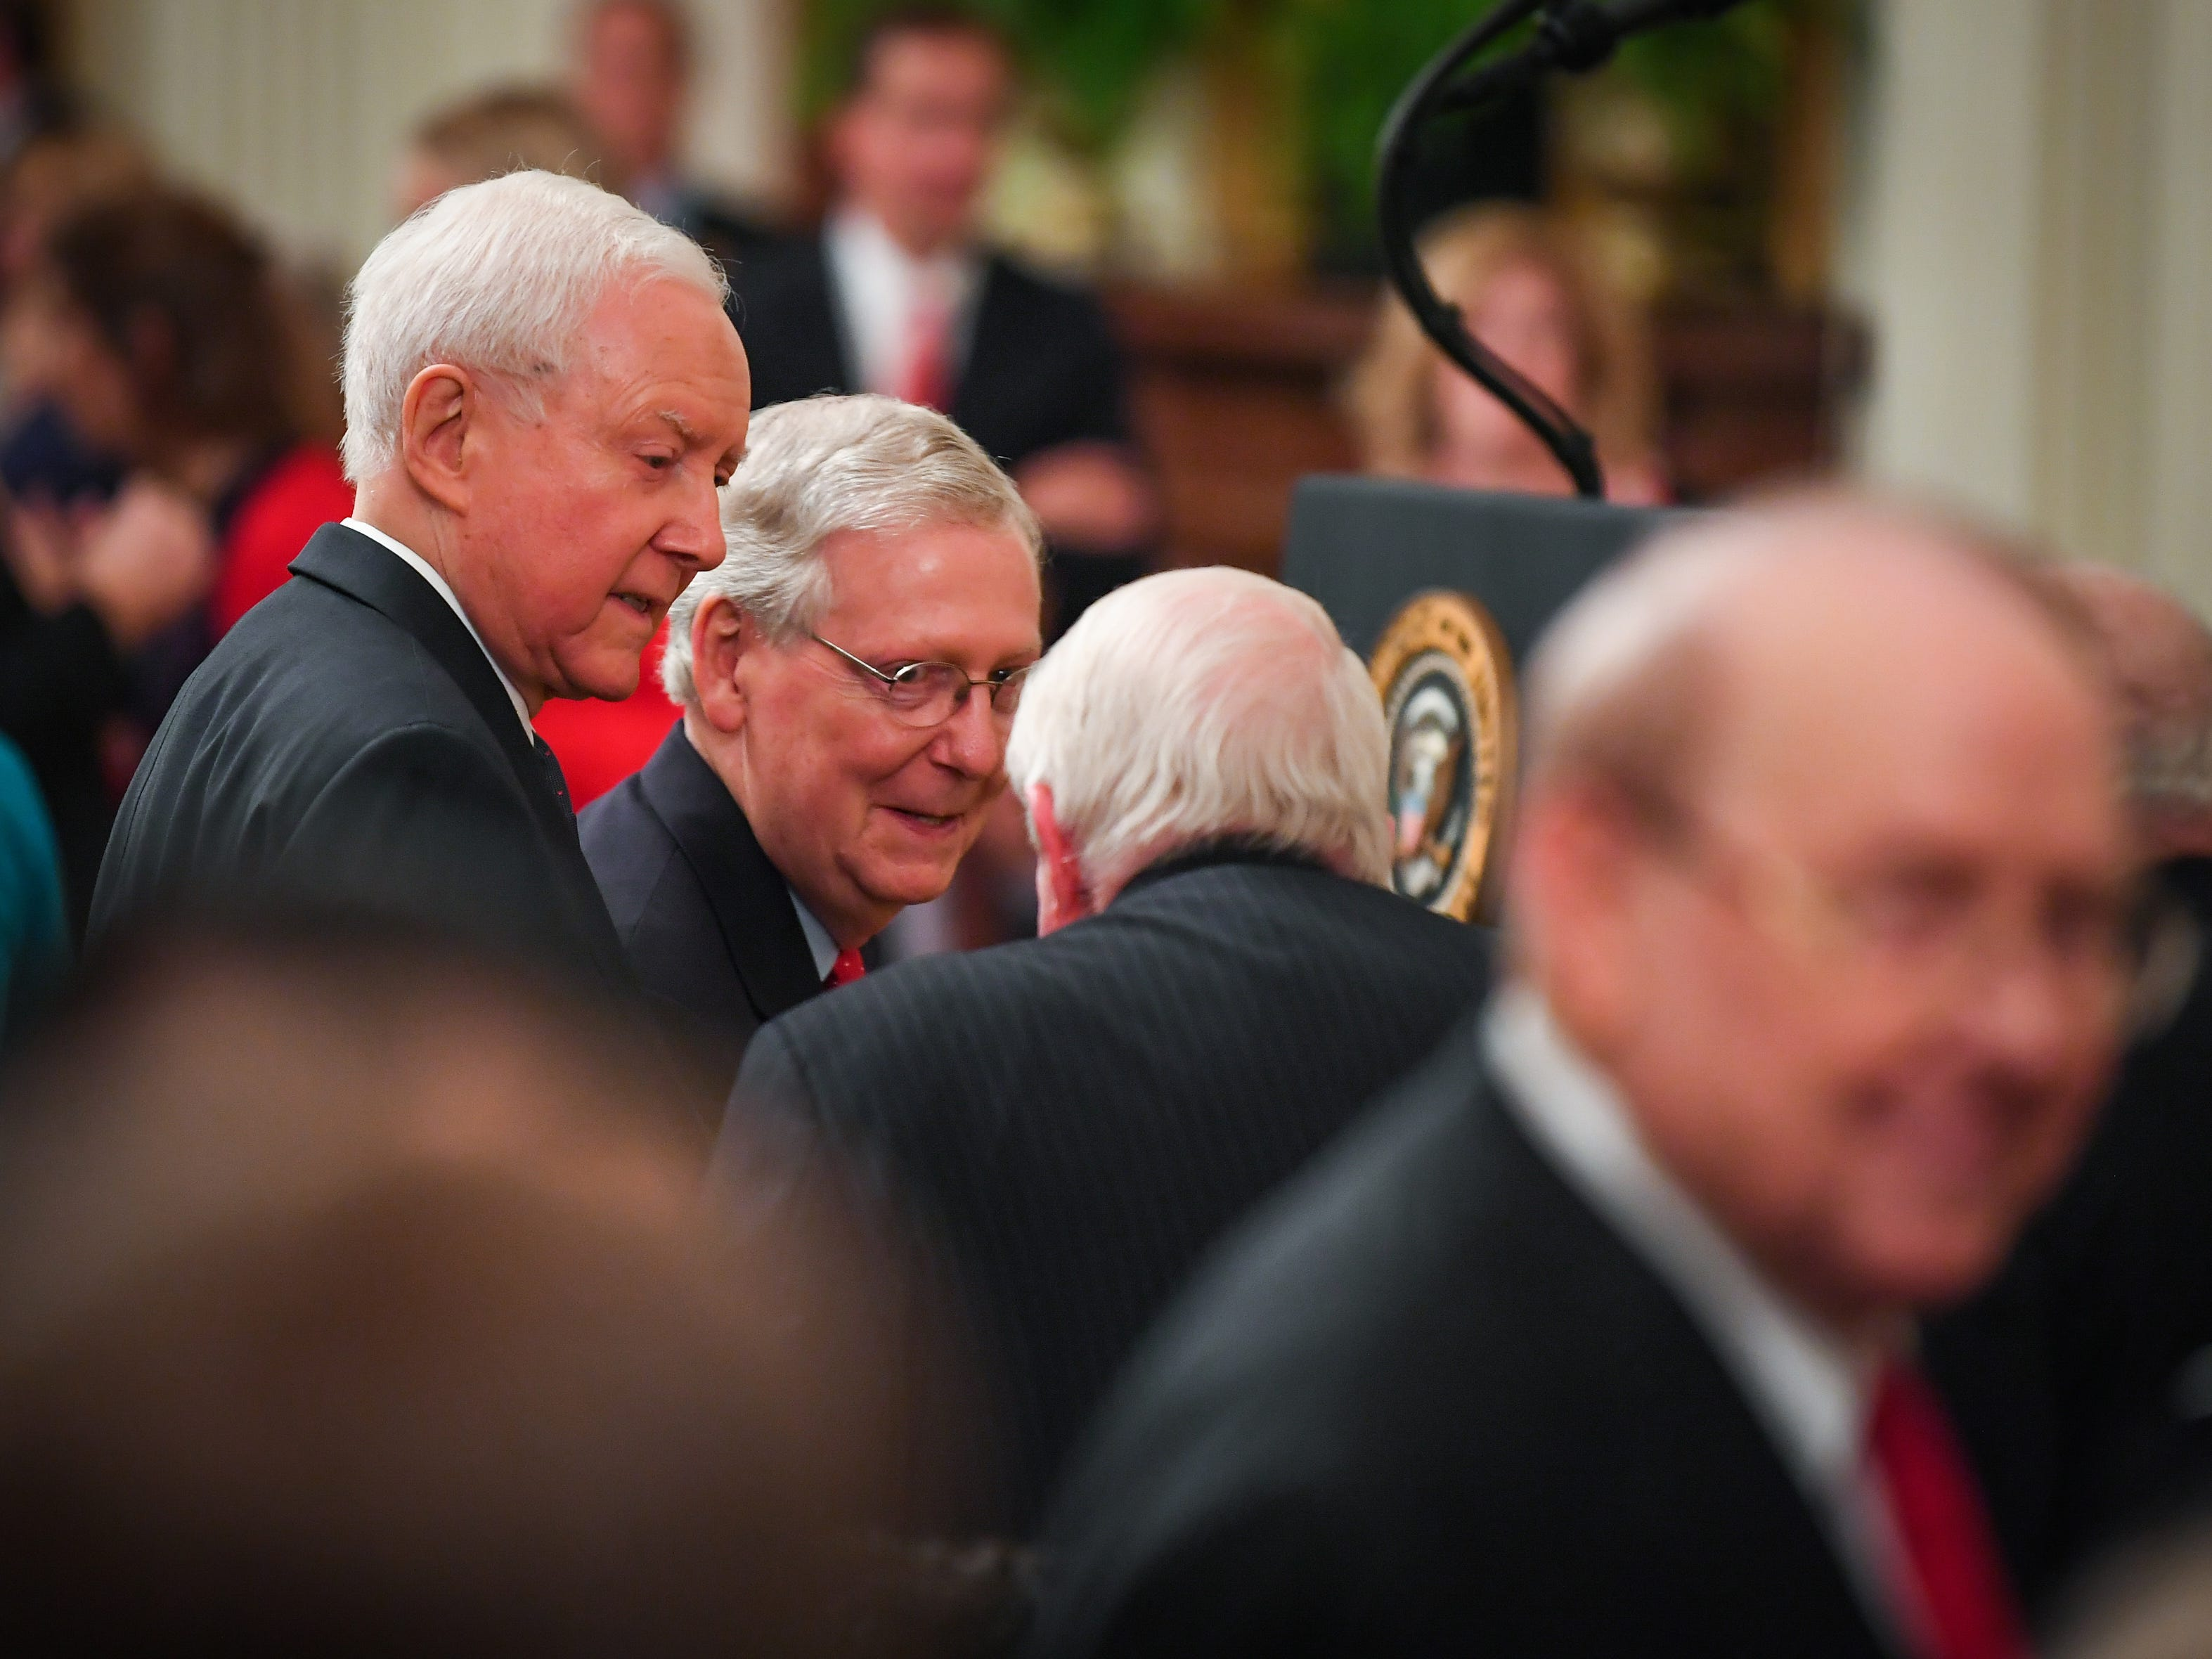 Senate Majority Leader Mitch McConnell and Senator Orrin Hatch, the senior member and former Chairman of the Senate Judiciary Committee, left, look on during the ceremony.